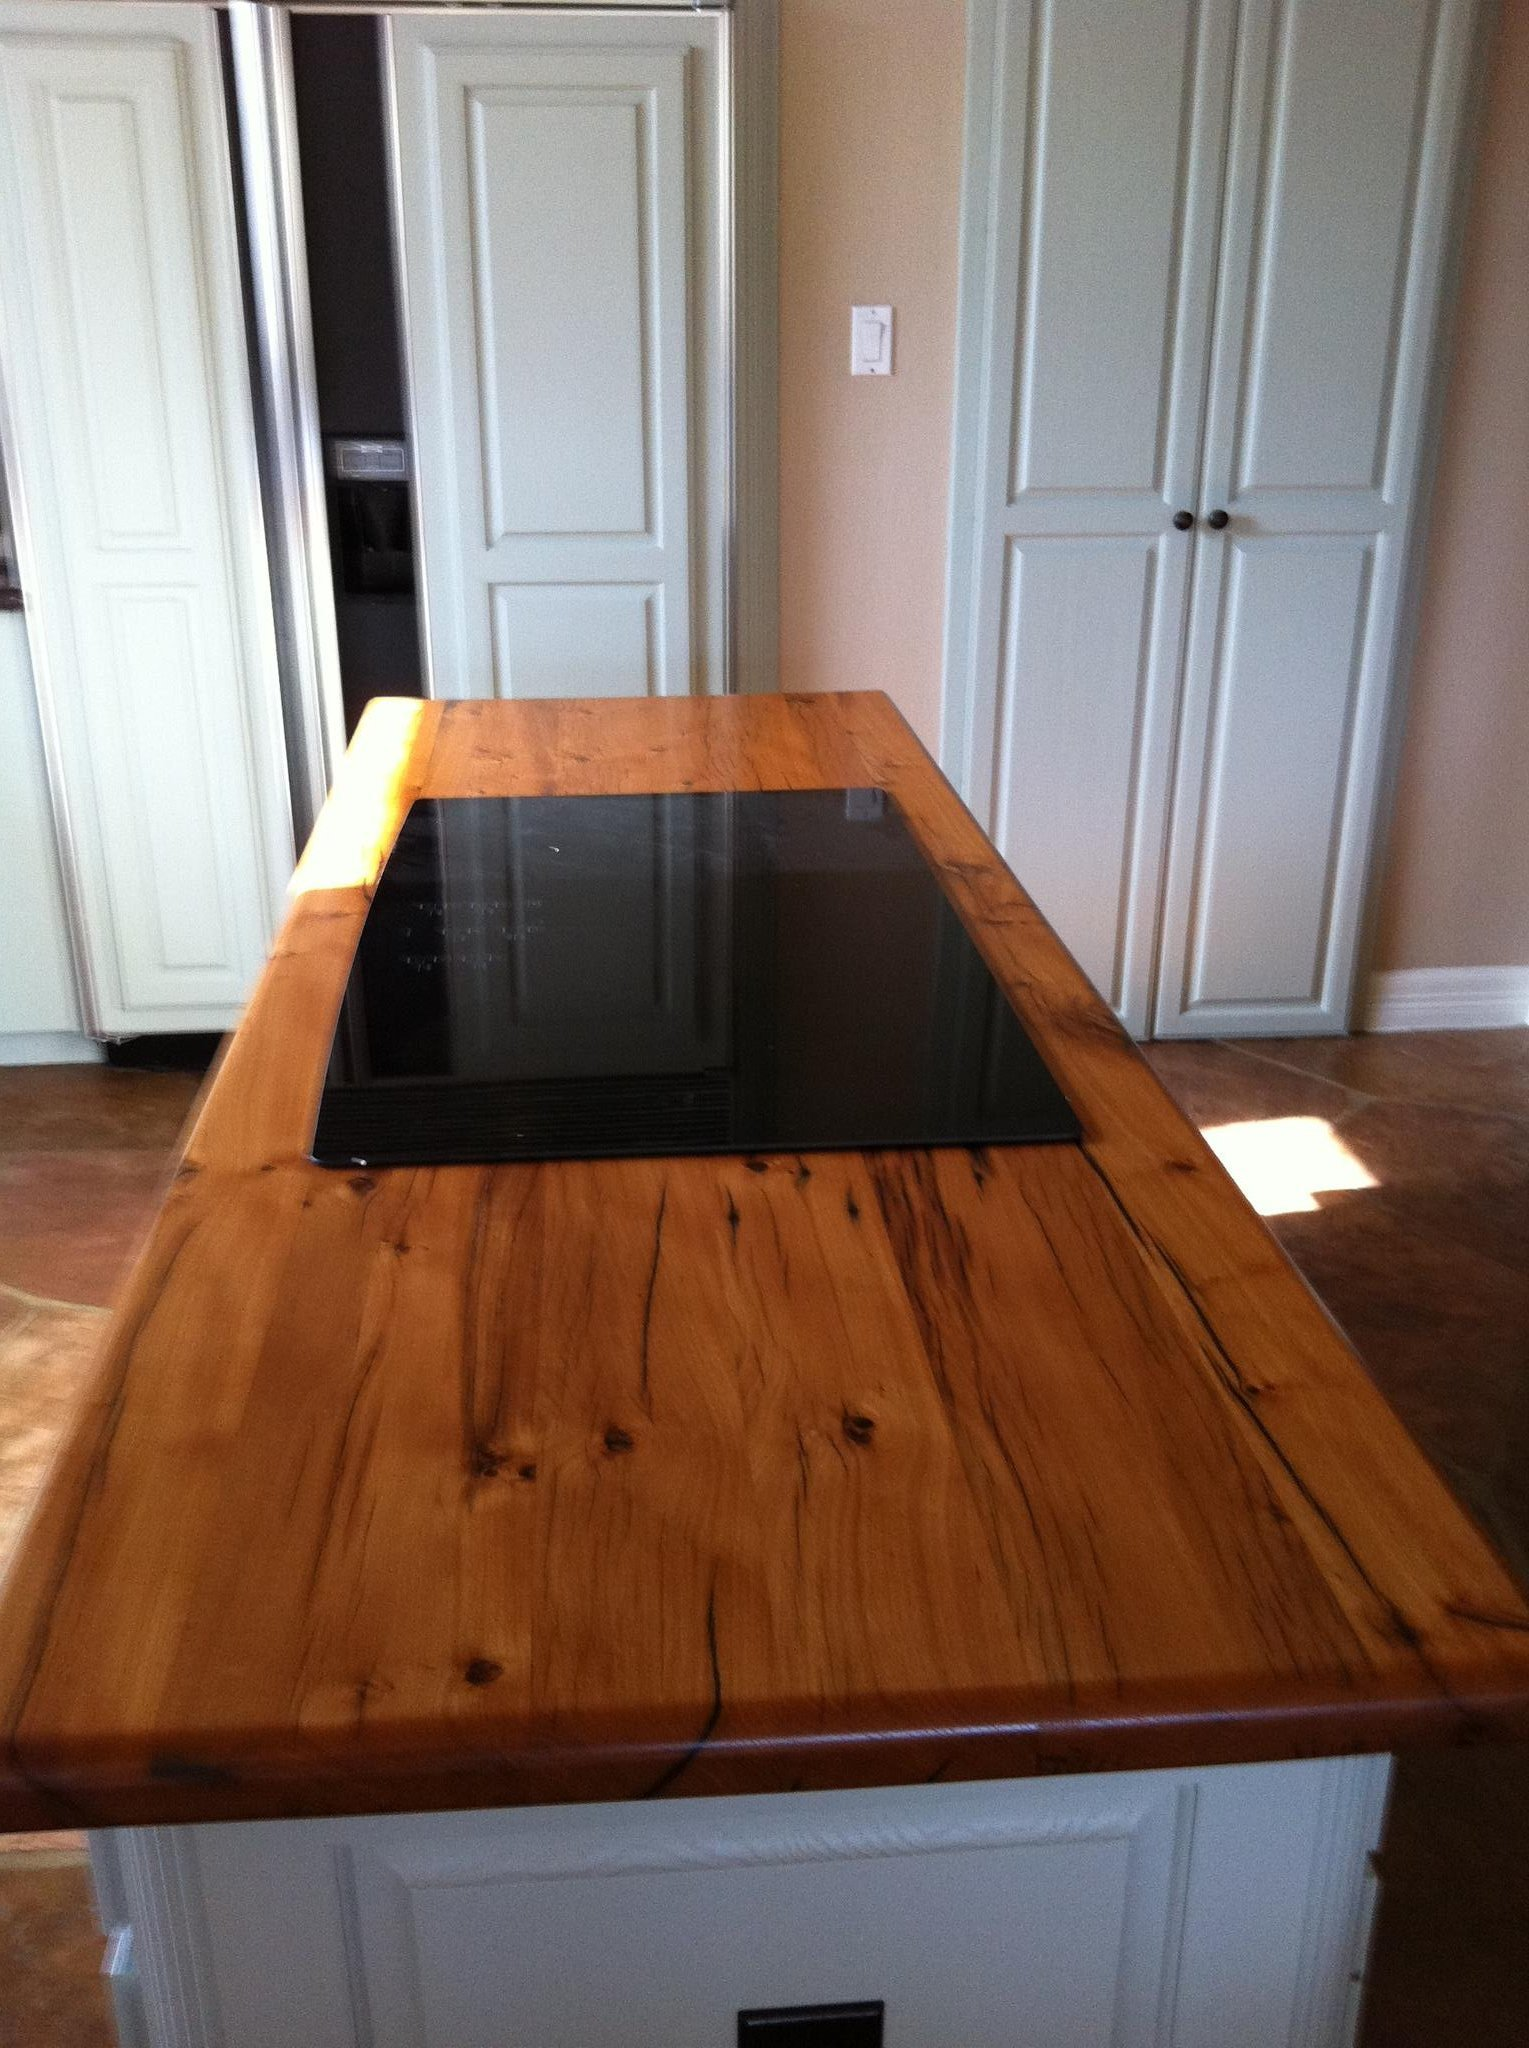 Awesome Picture for Wooden Kitchen Coutertops with Long Design and Black Glass Accent